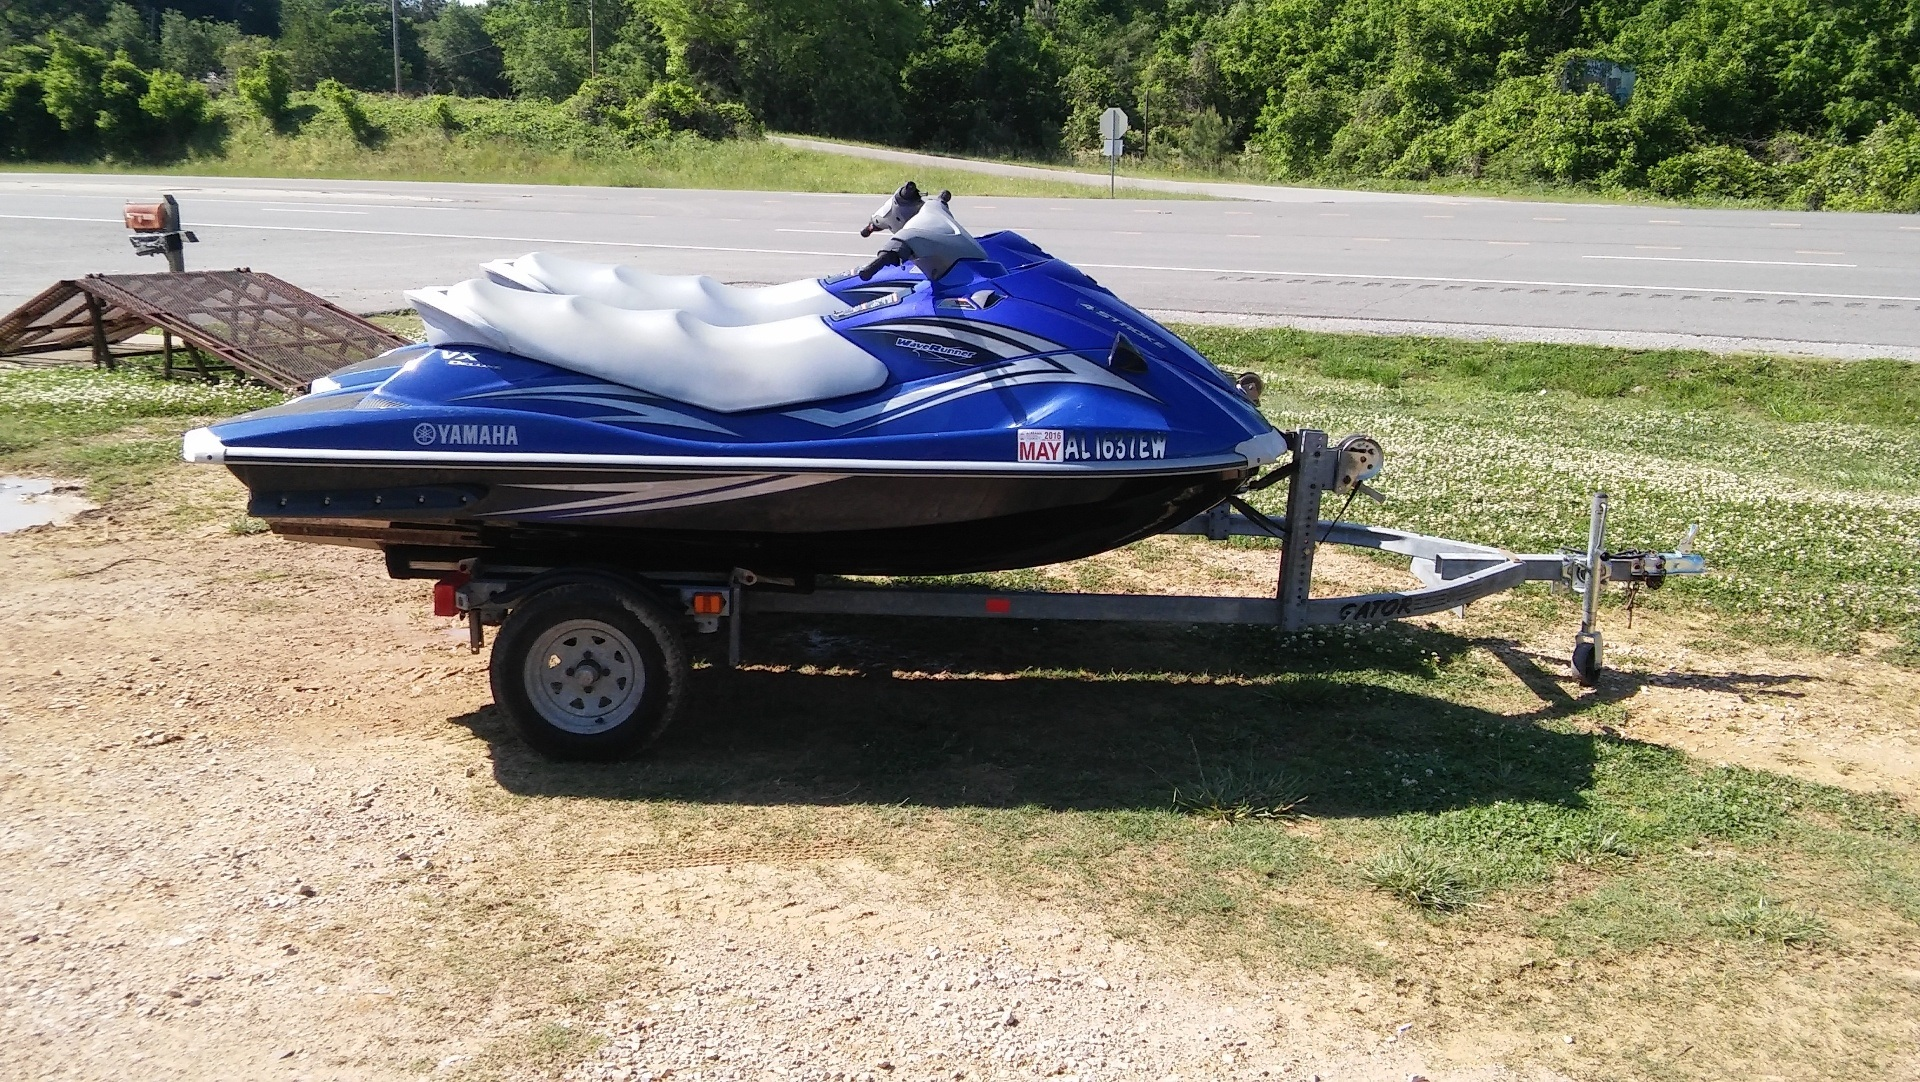 2008 Yamaha VX Deluxe for sale 132088